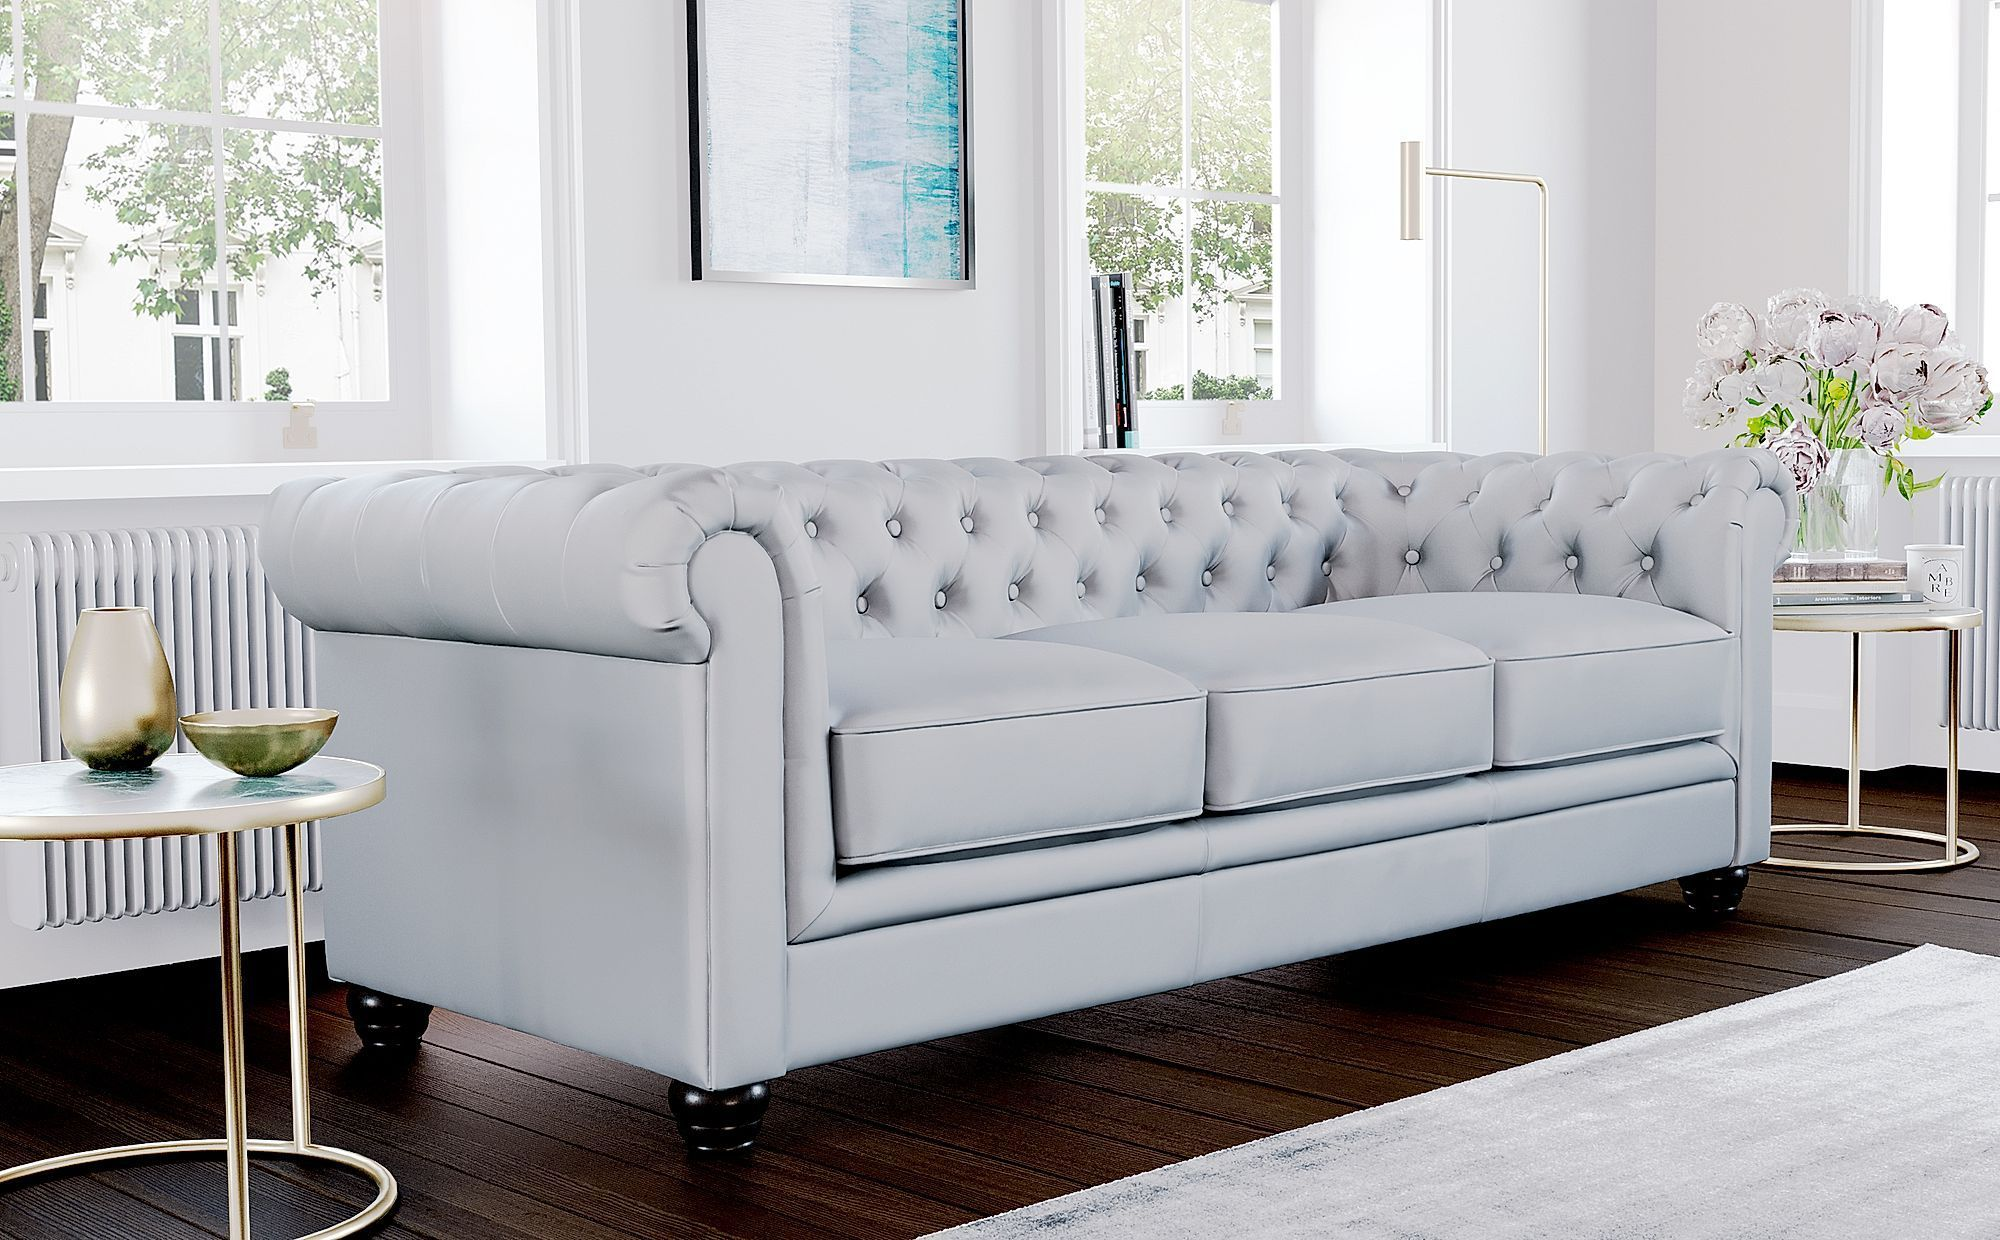 Hampton Light Grey Leather 3 Seater Chesterfield Sofa Pinpon In 2020 Furniture Choice Grey Leather Chesterfield Sofa Sofa Set